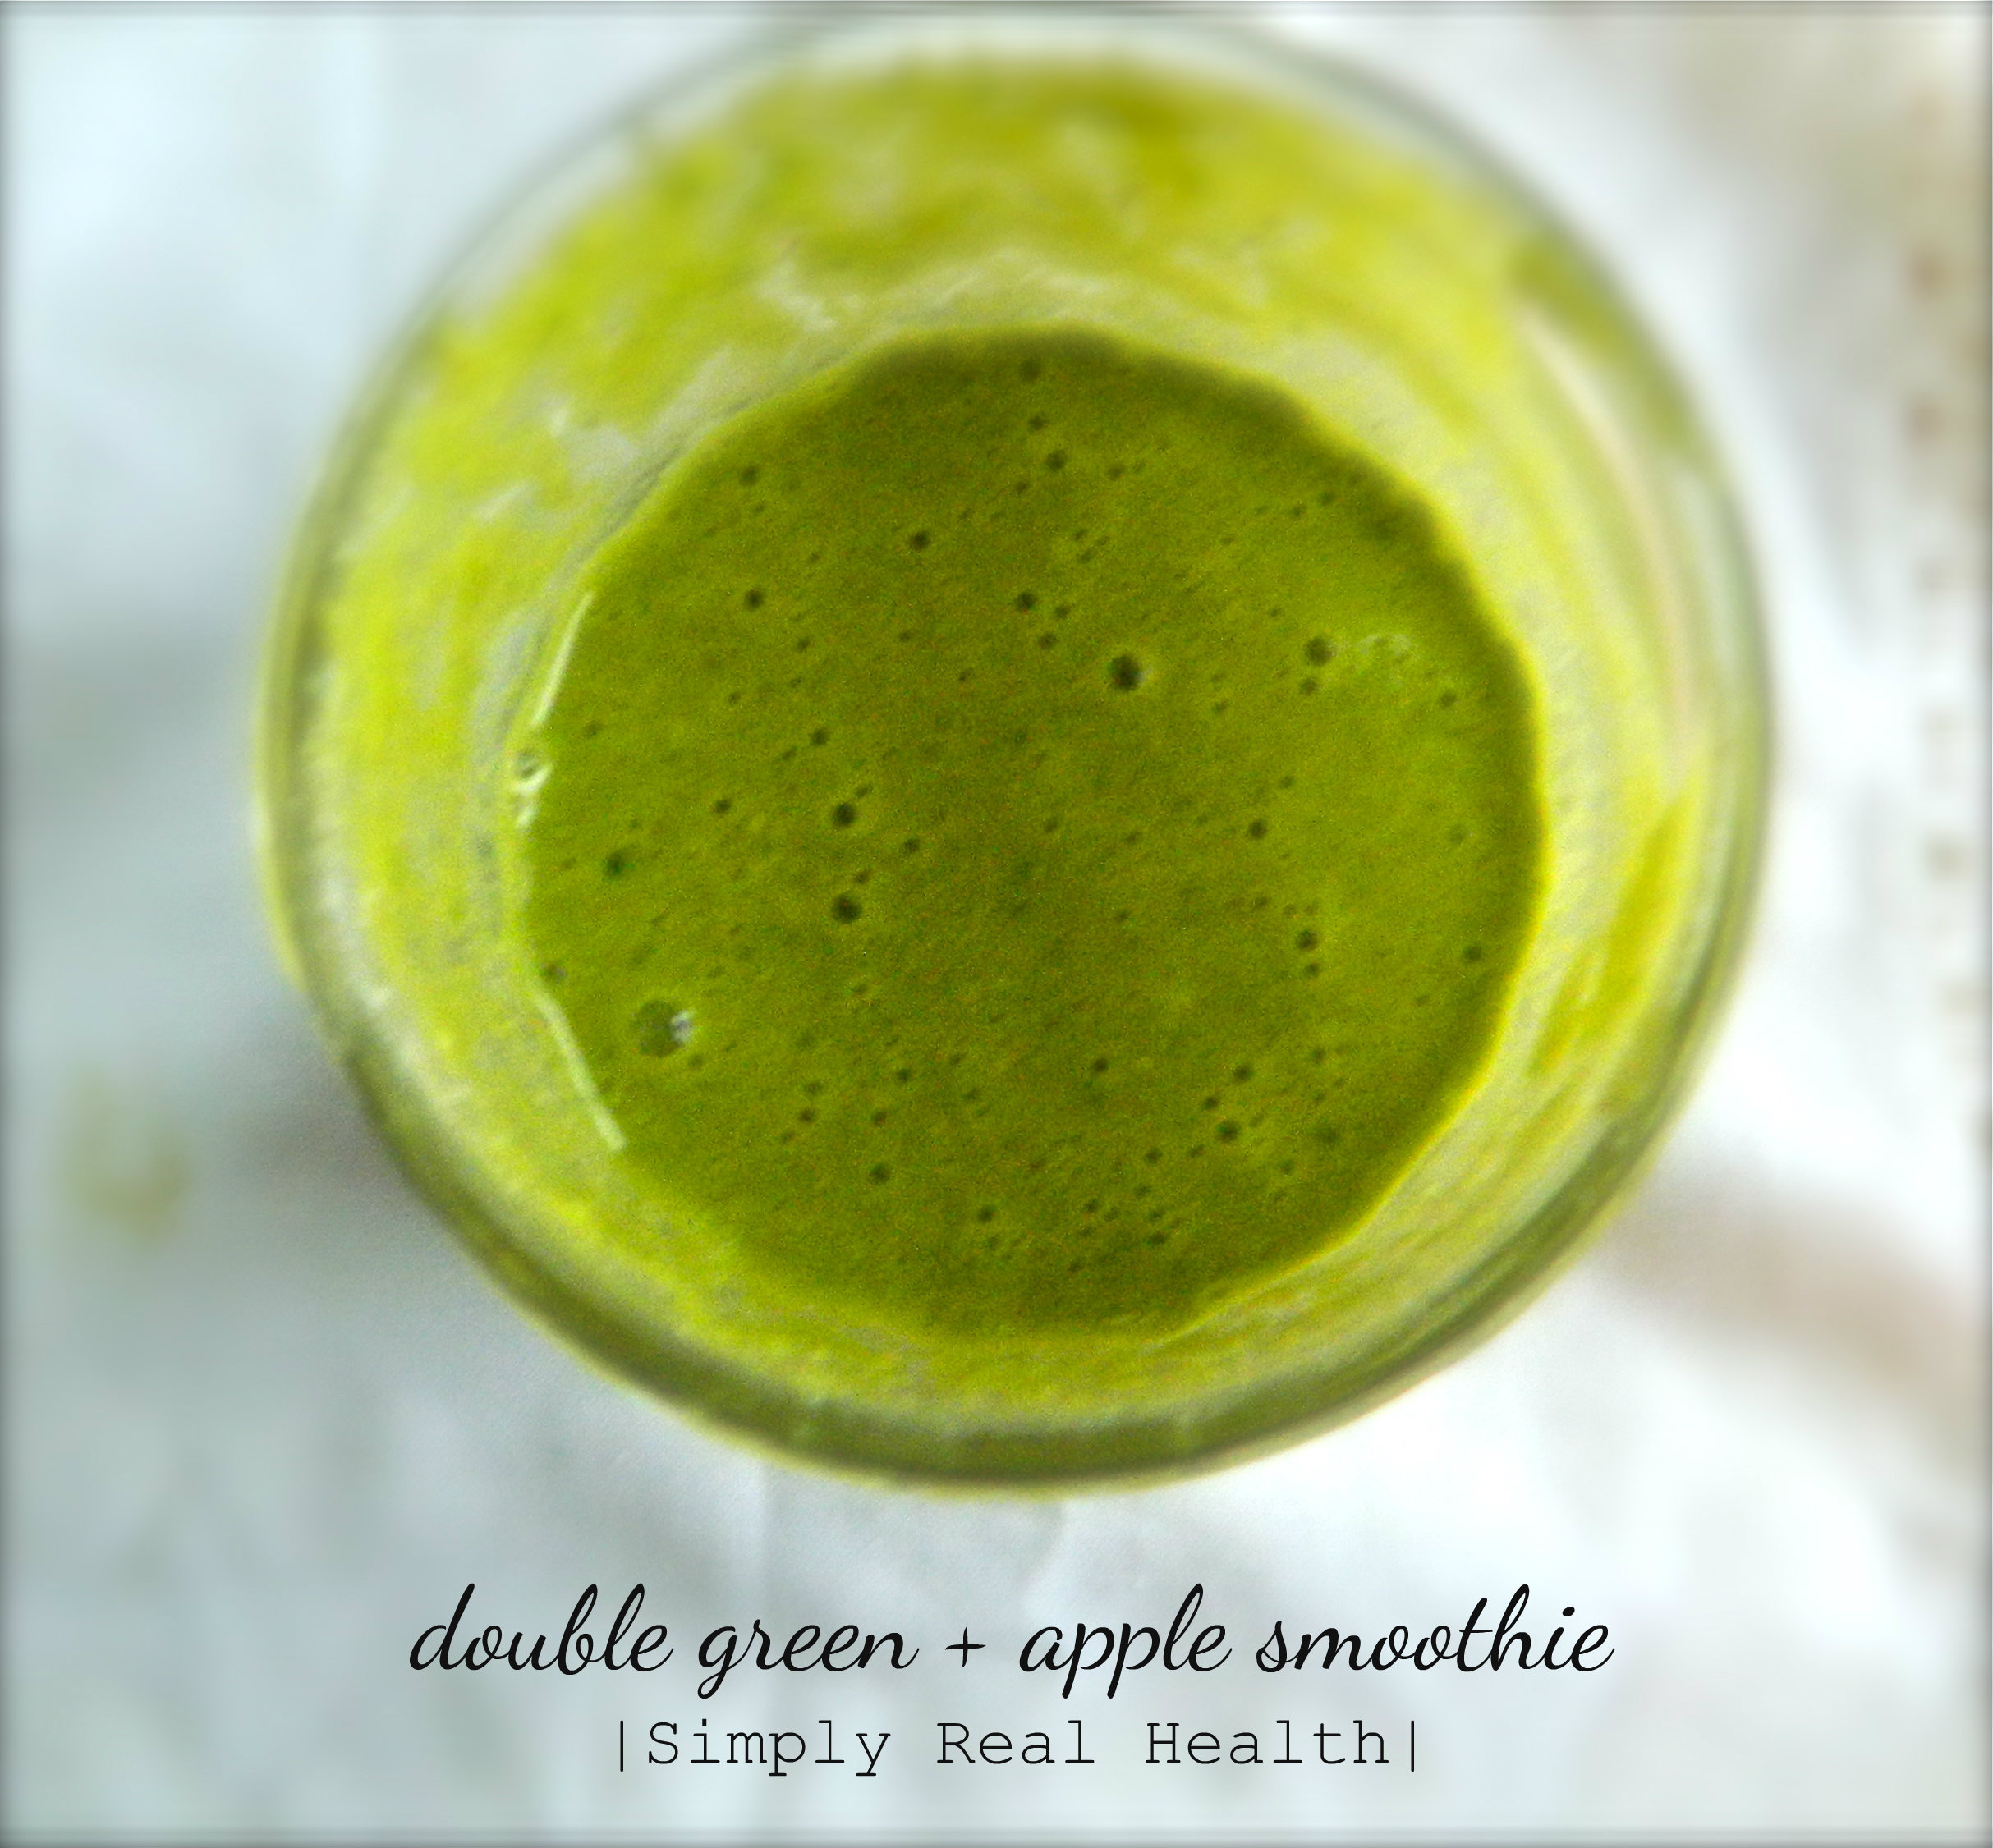 double green + apple smoothie | simply real health |